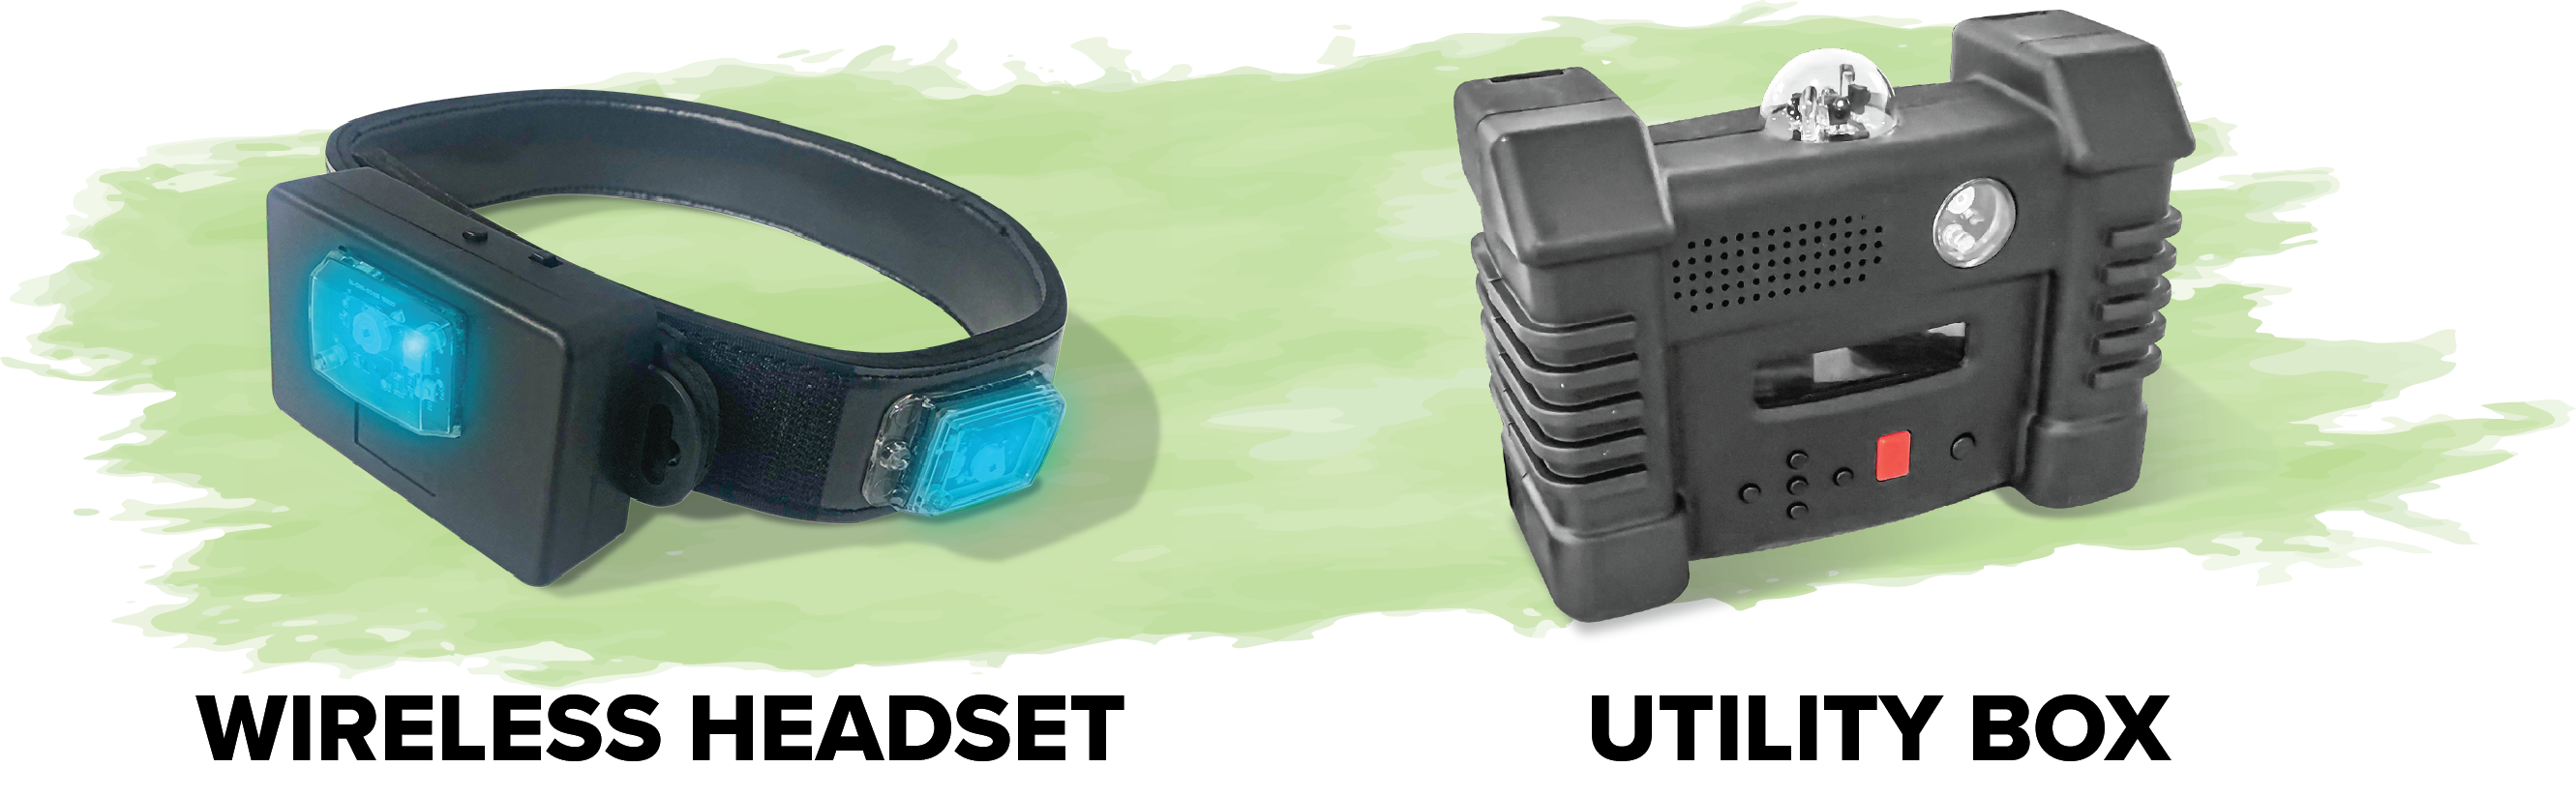 laser tag accessories